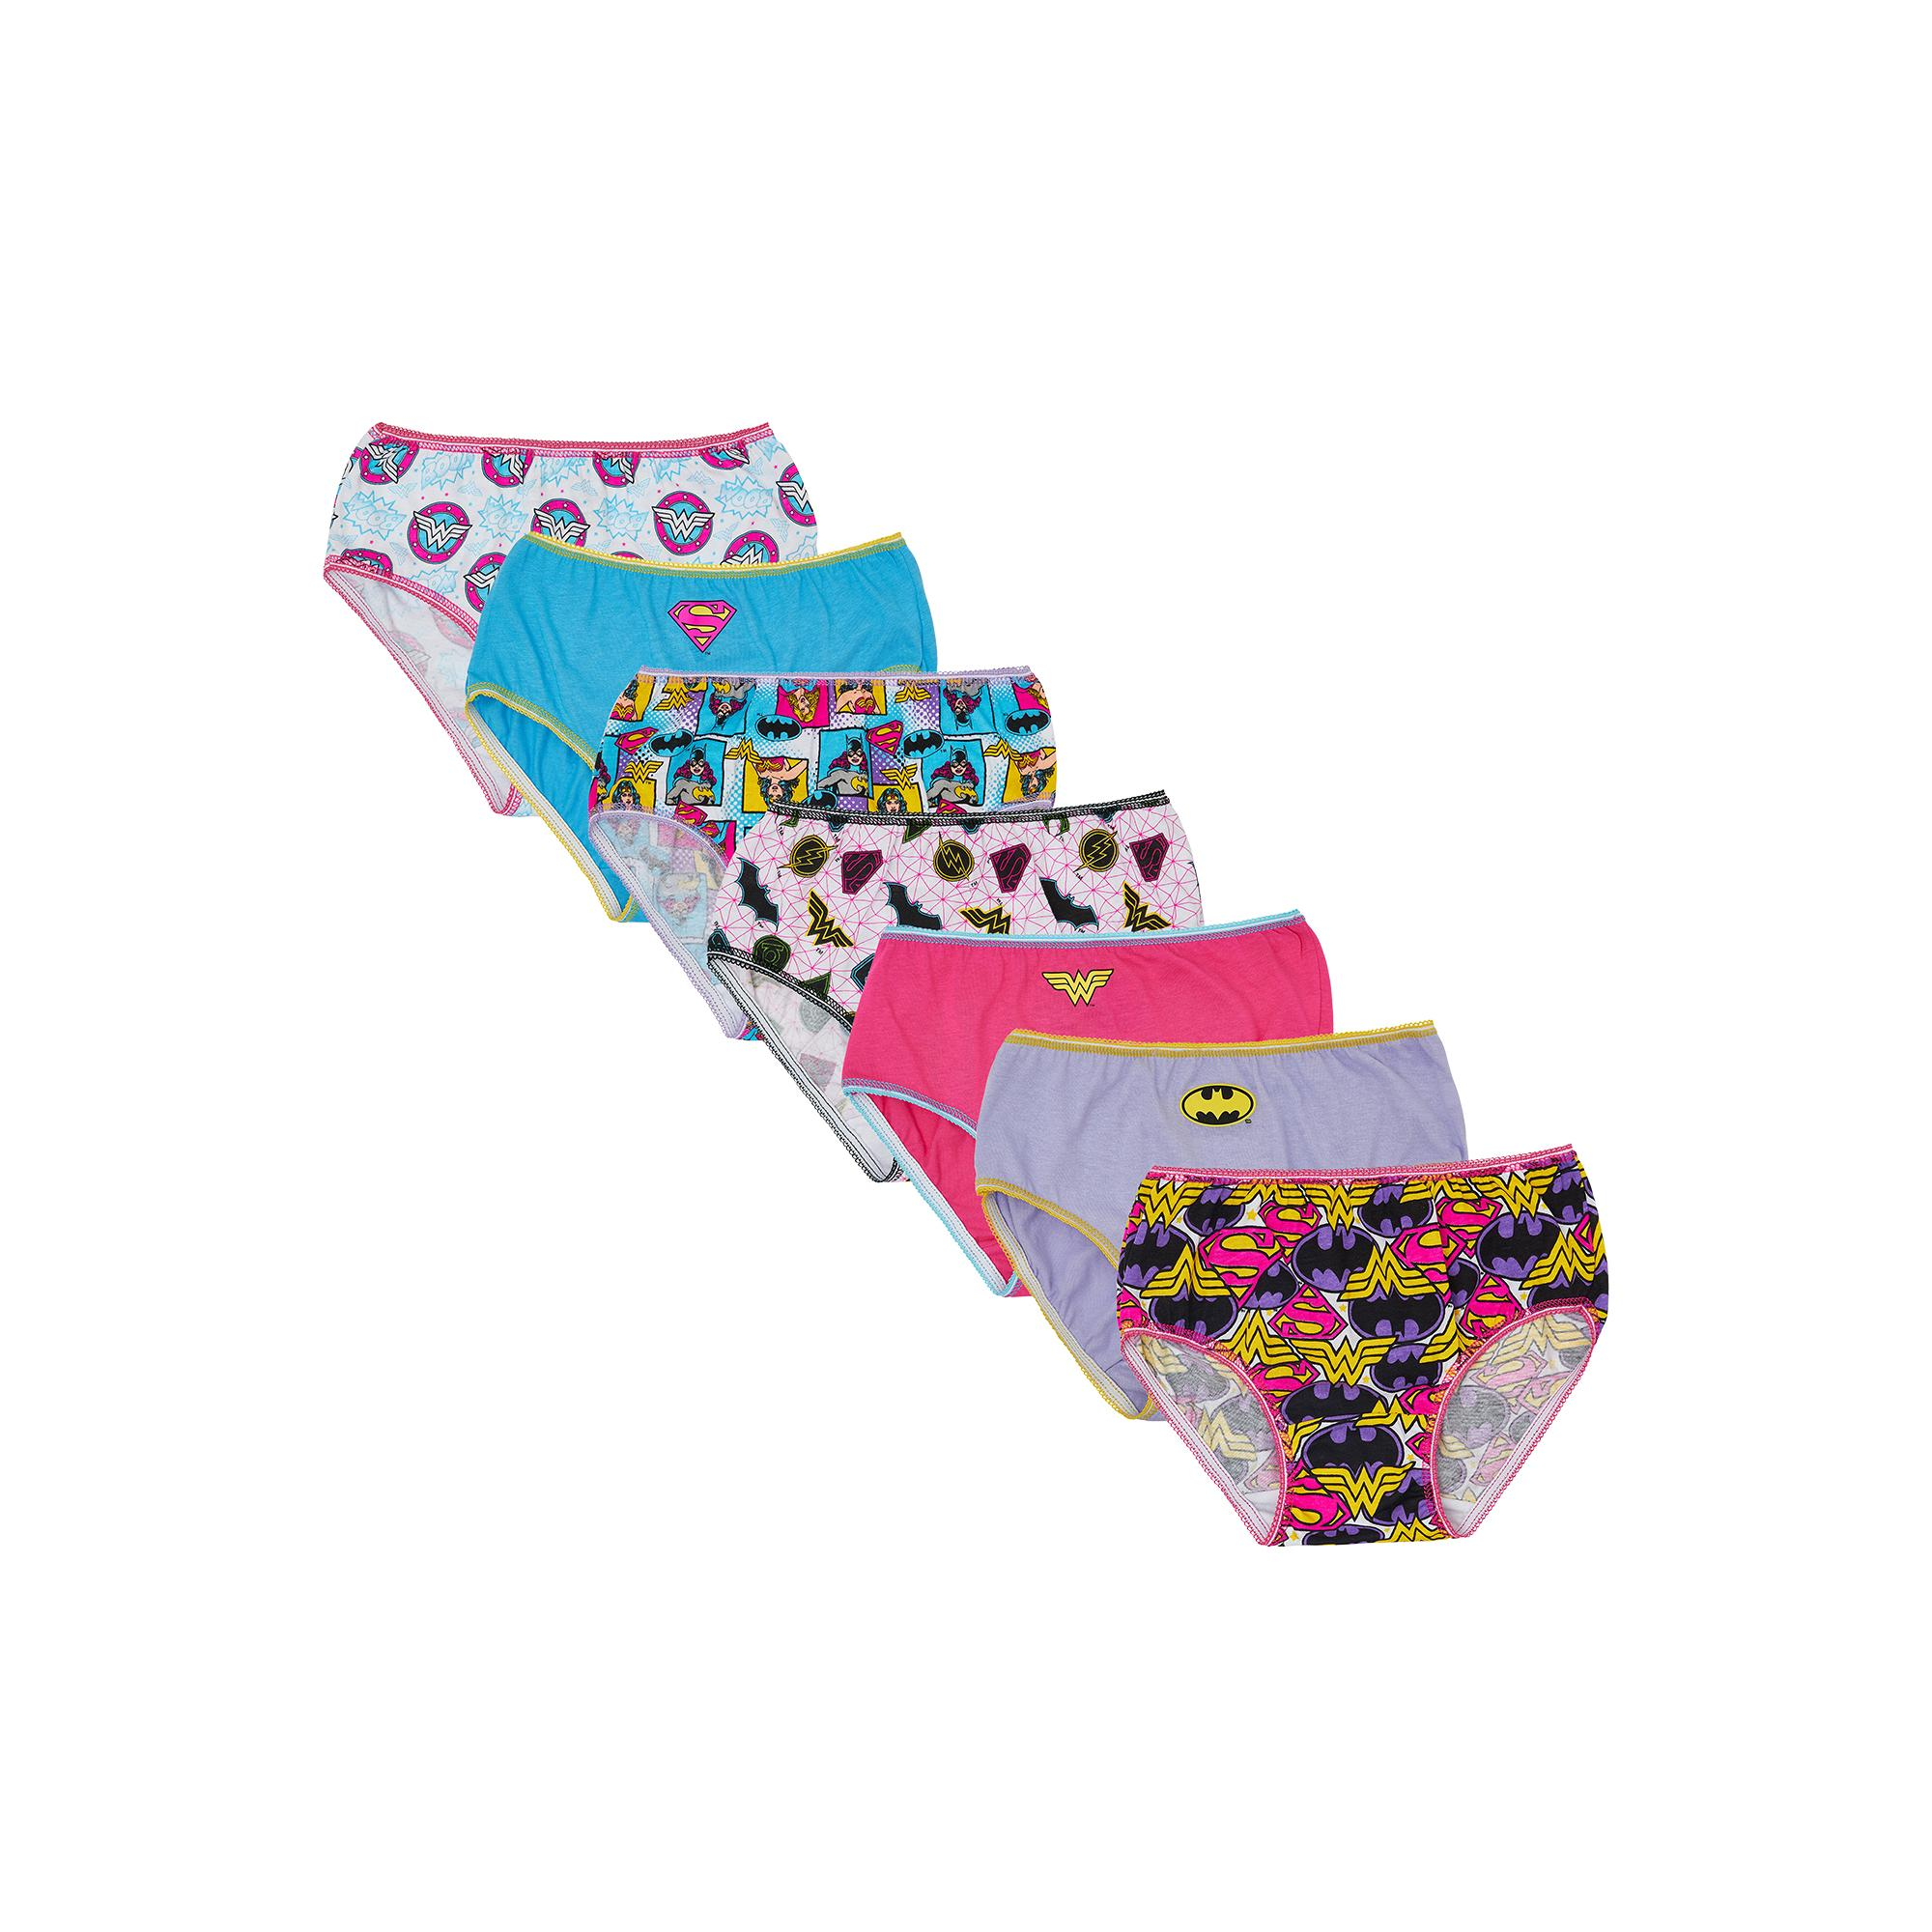 DC Comics Logo Girls' Underwear, 7 Pack